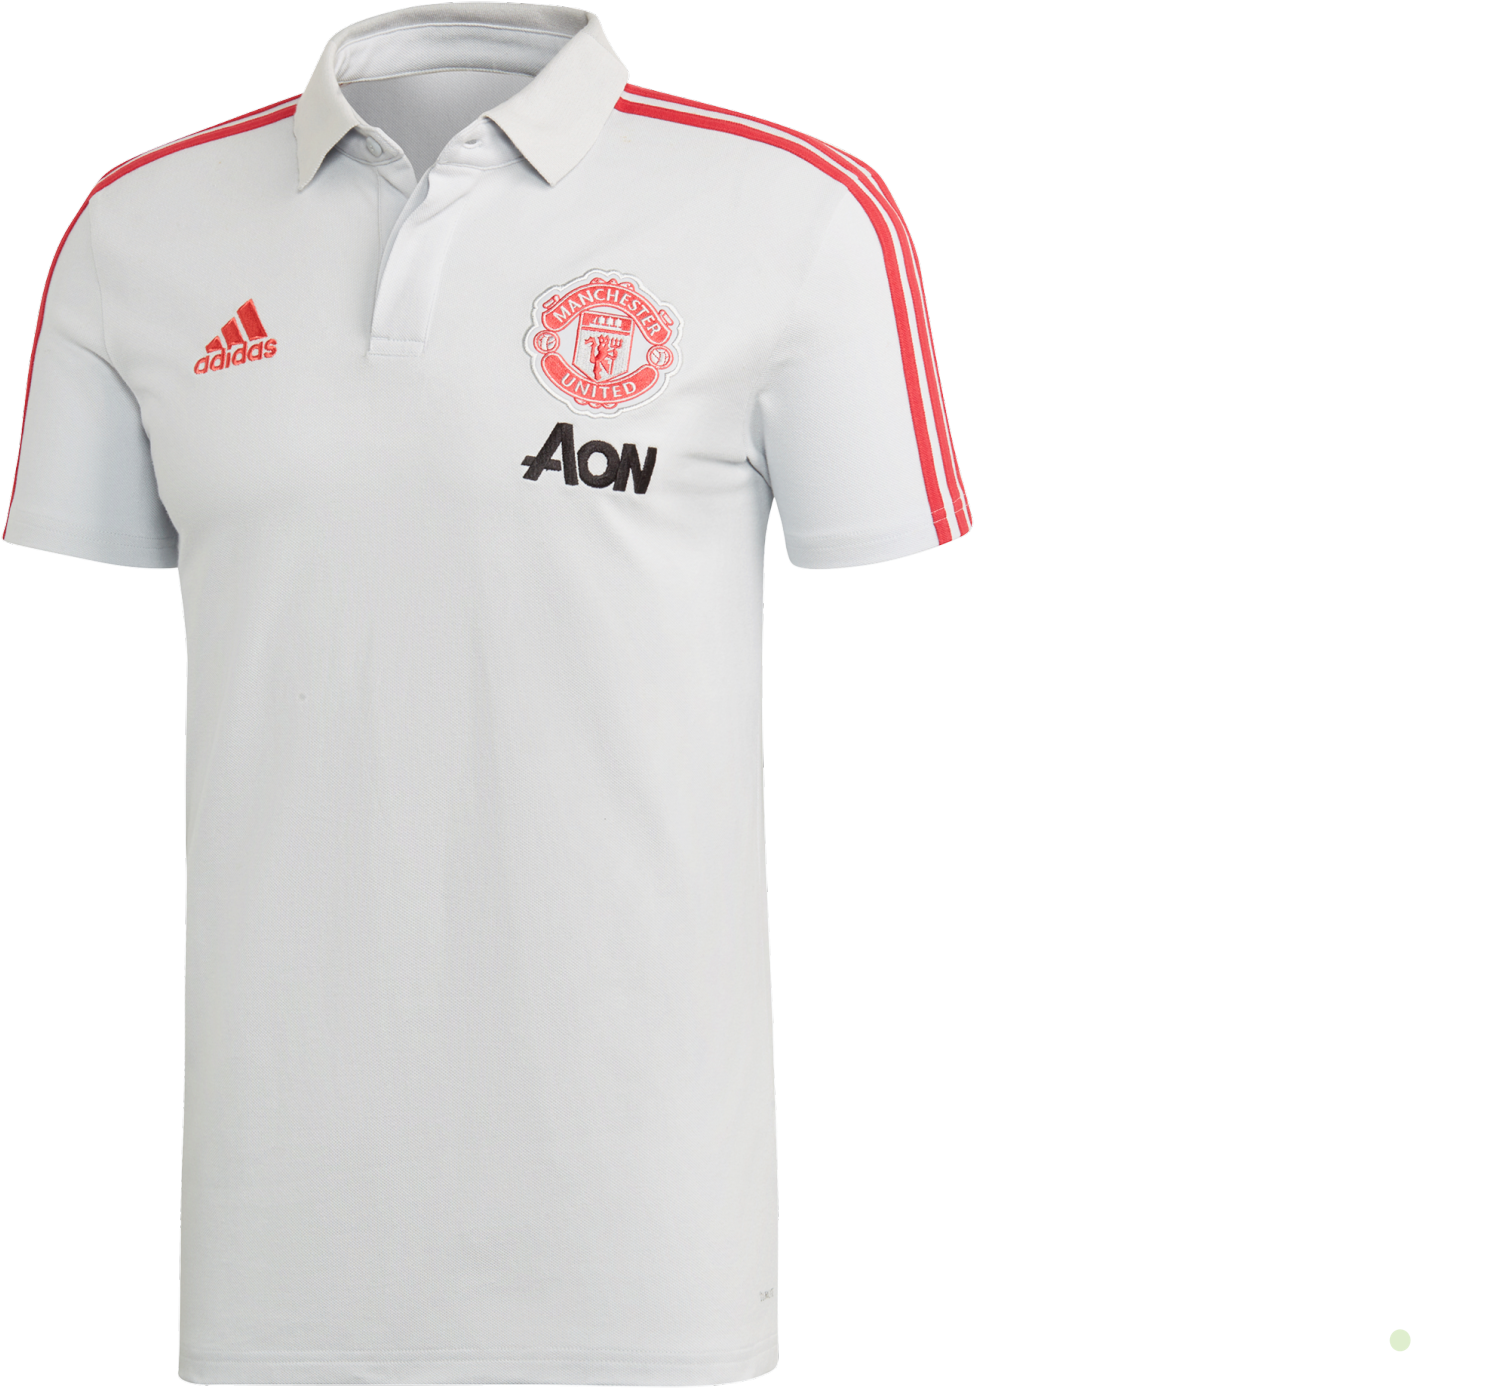 T Shirt Adidas Manchester United Polo Dp6828 Puma Kit Full Size Png Download Seekpng